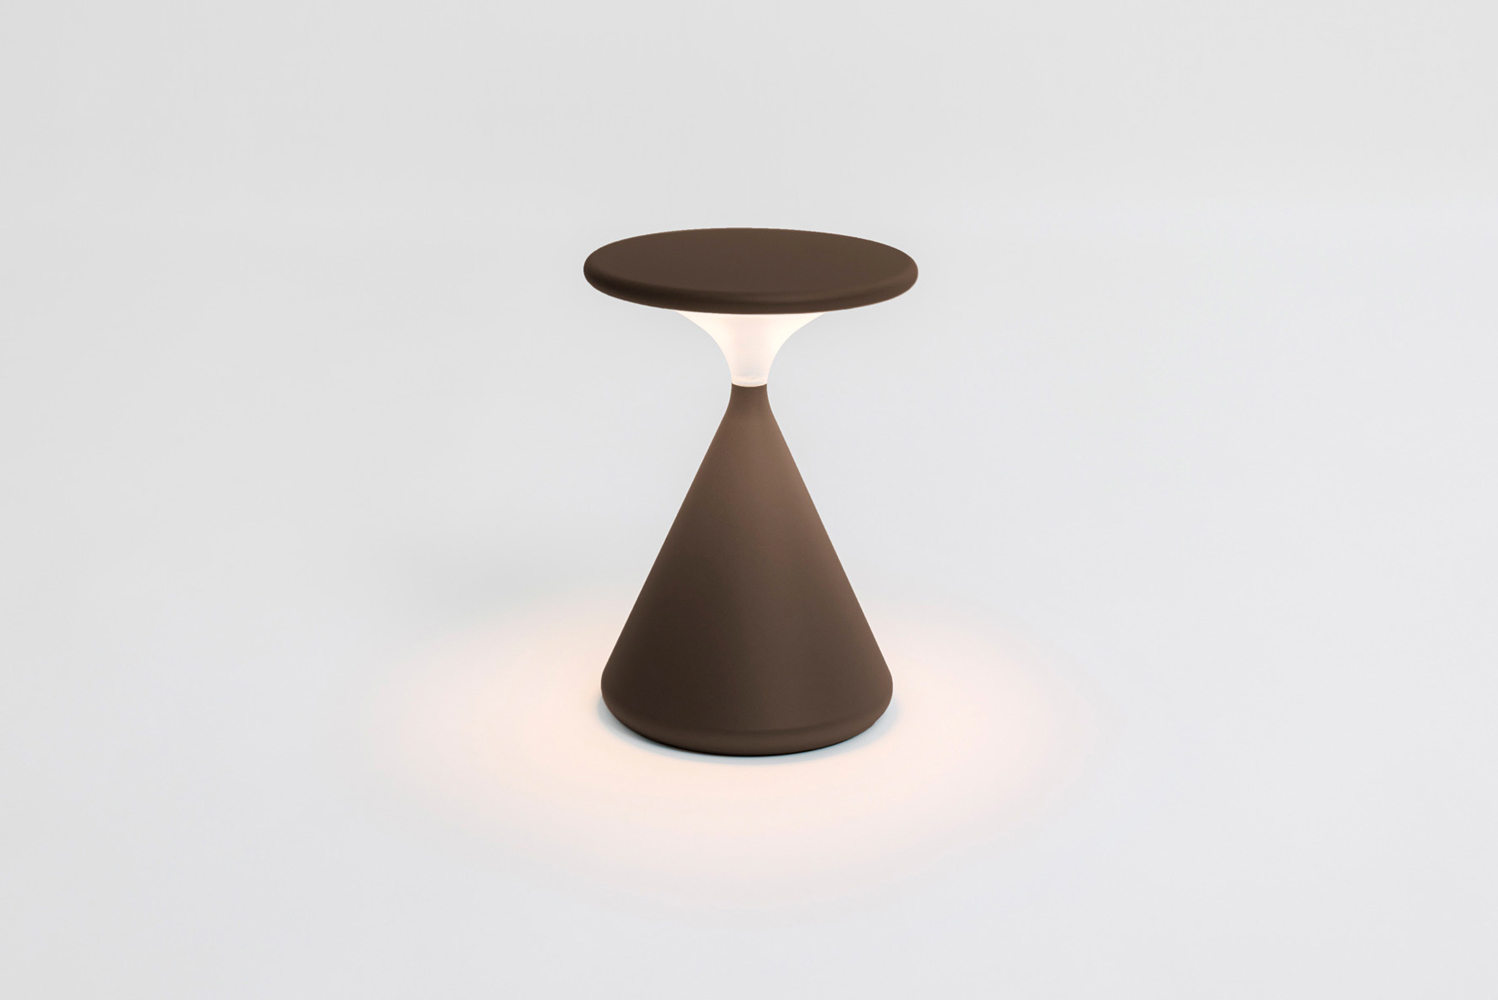 Tobias Grau announced Salt & Pepper lamp.